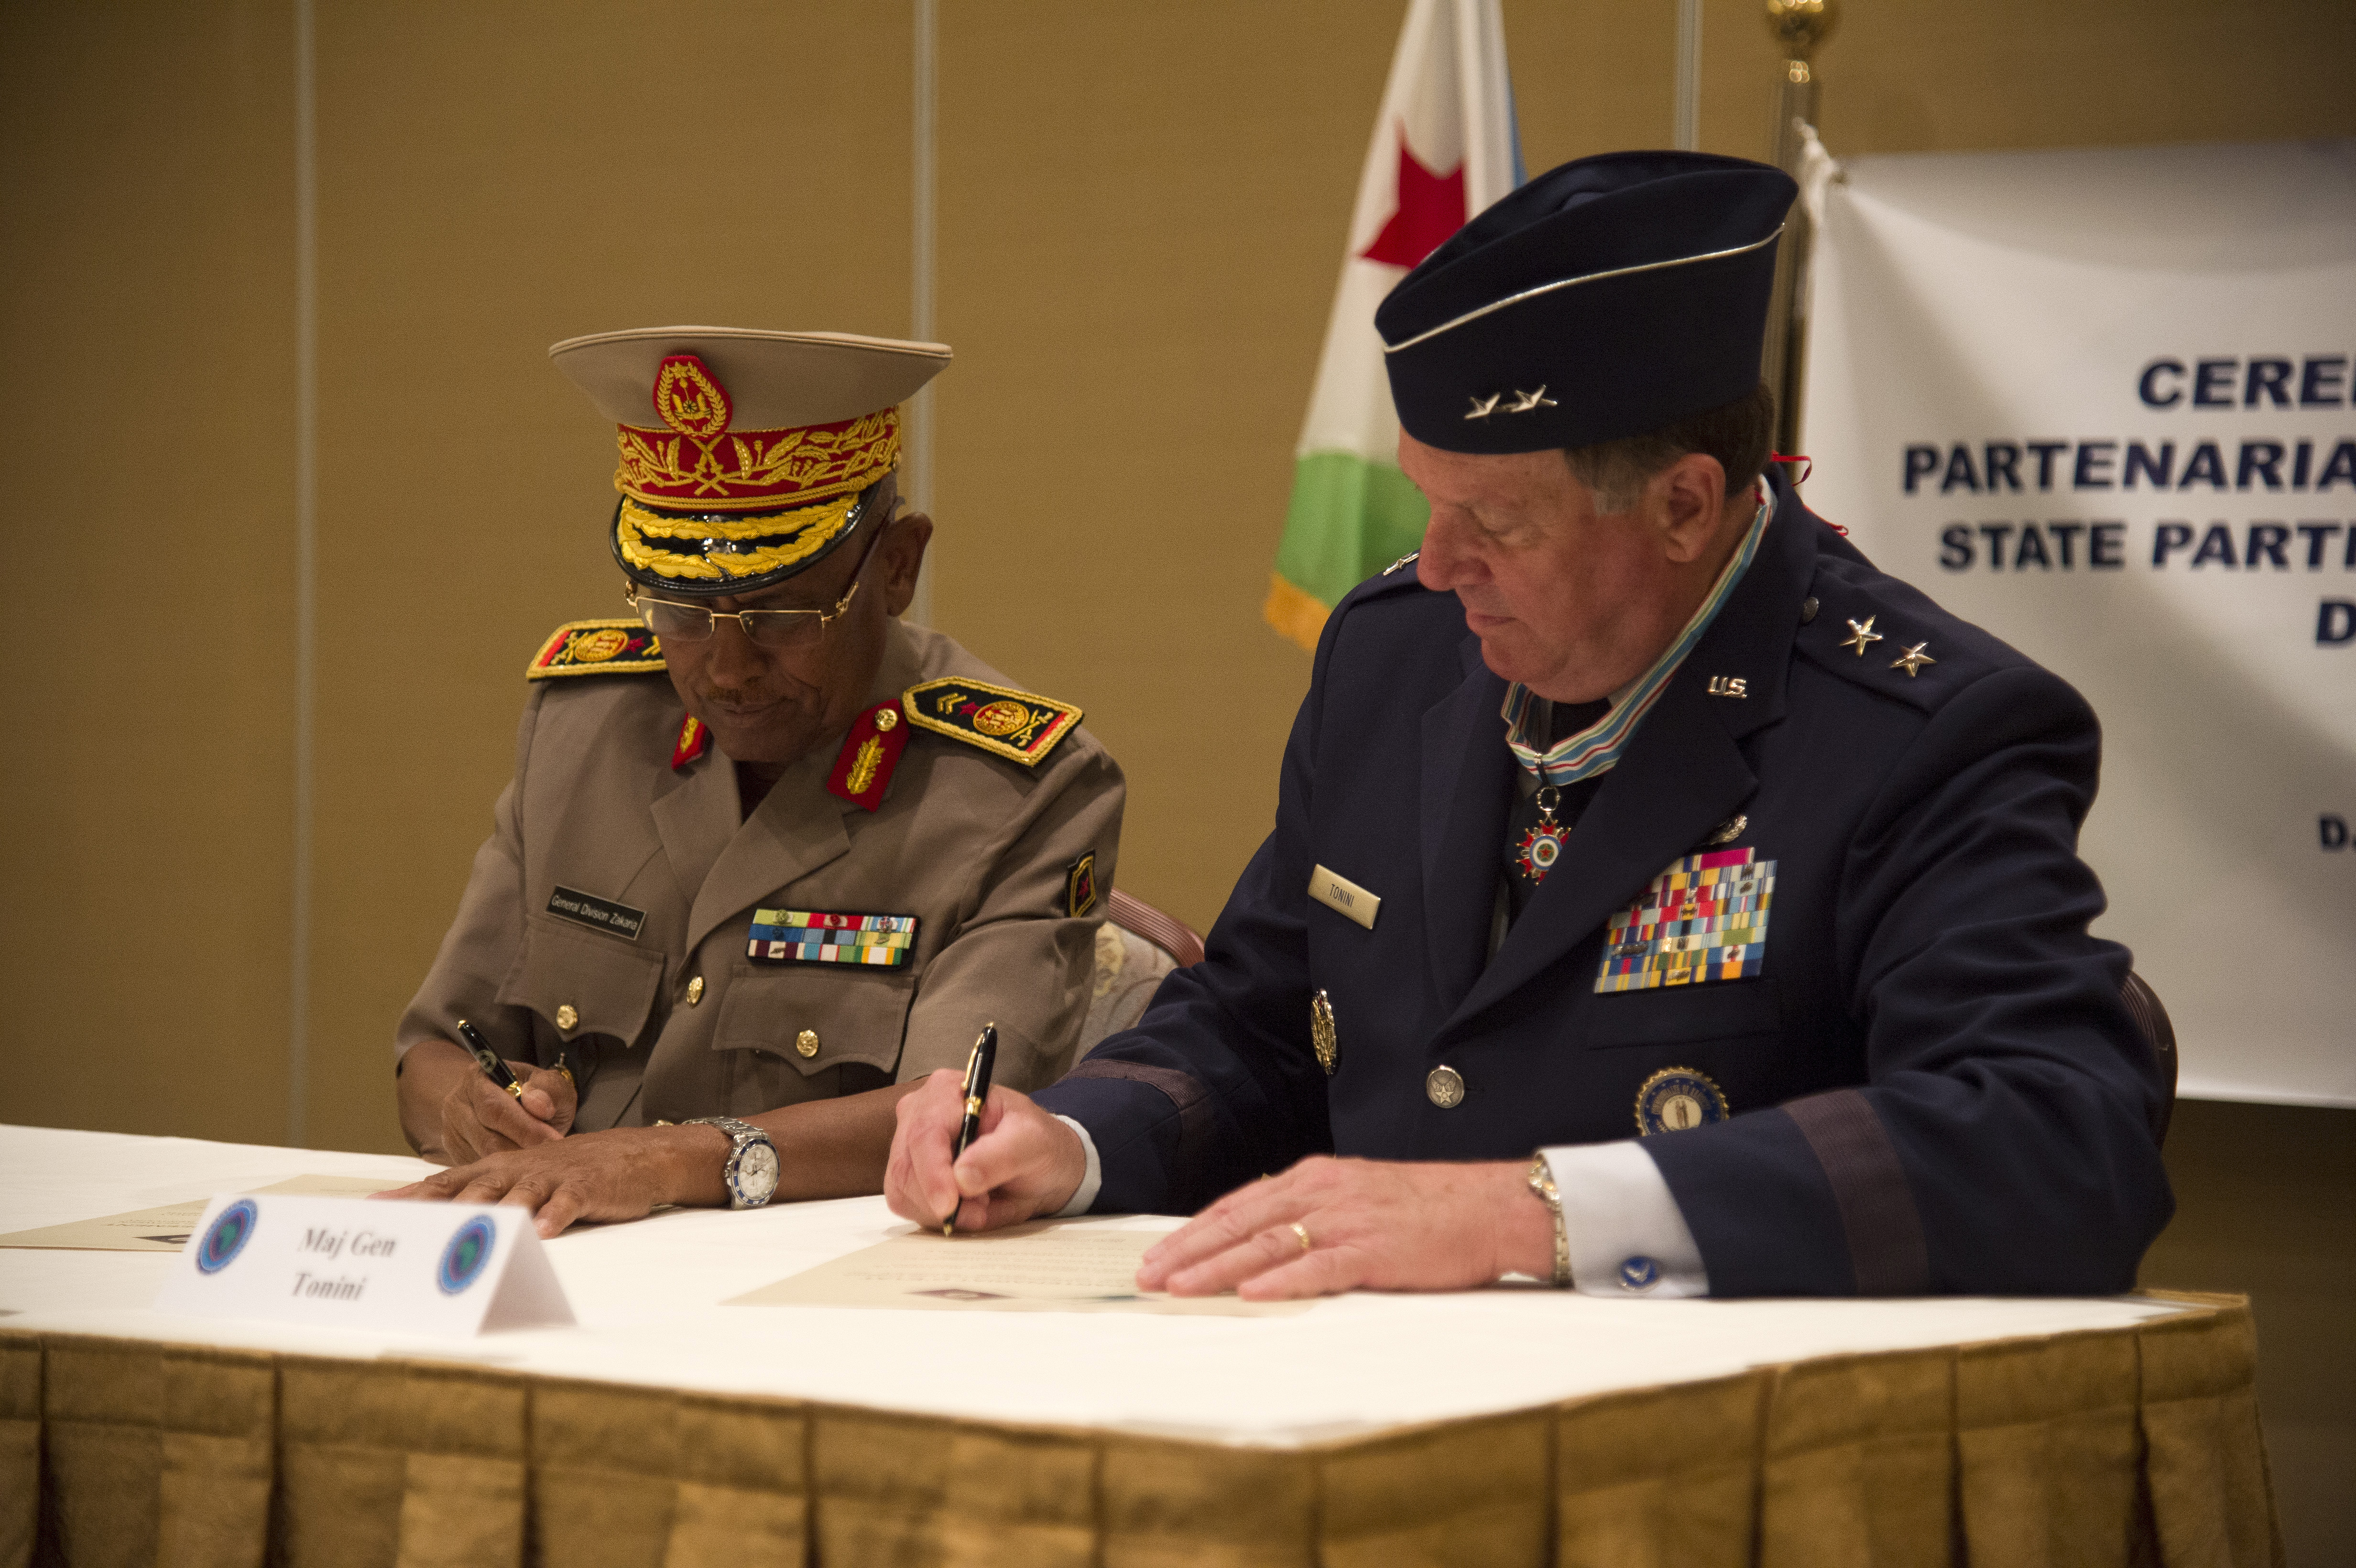 Maj. Gen. Zakaria Cheik Ibrahim, (left), Djiboutian Armed Forces (FAD) chief of defense and Maj. Gen. Edward Tonini, Kentucky National Guard (KNG) adjutant general, sign a State Partnership Program agreement at the Kempinski Hotel, Djibouti, June 2, 2015. The agreement means a long term cooperative agreement between the KNG and FAD that will foster mutually beneficial exchanges between the two at all levels of the military as well as the civilian world. (U.S. Air Force photo by Staff Sgt. Nathan Maysonet)